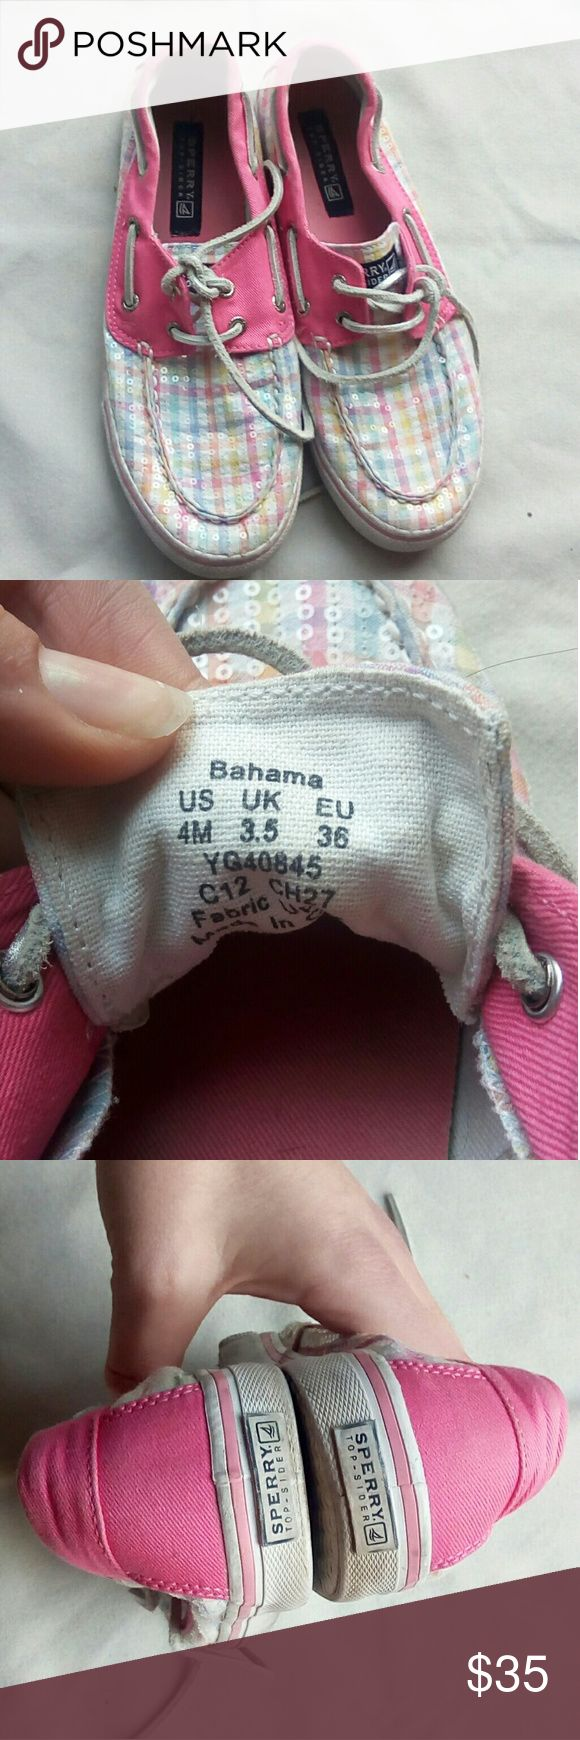 Bahama Sperry's women's size 6 Women's size 6 kids size 4 Good condition - normal wear Cute pink plaid design Sperry Shoes Flats & Loafers